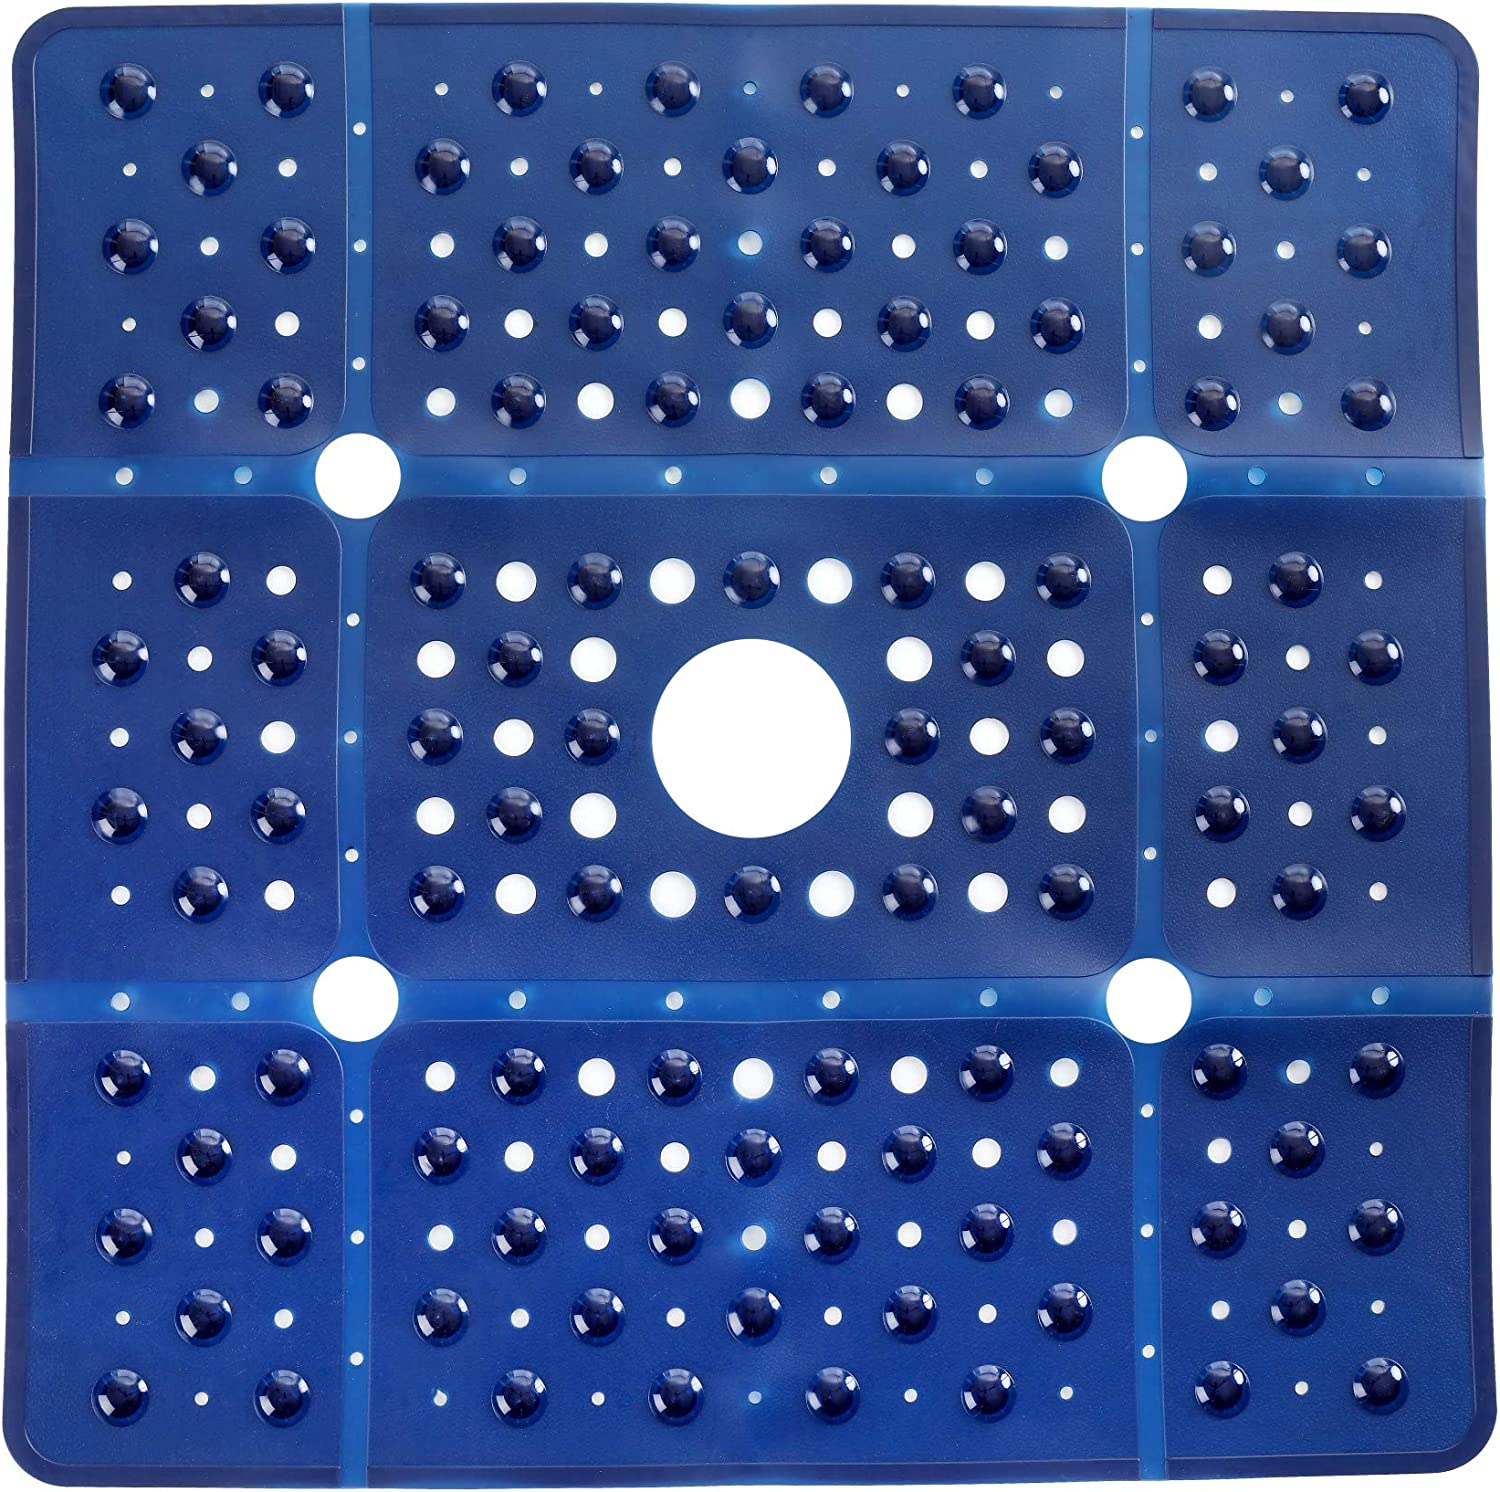 SlipX Solutions Extra Large Square Bombing new Max 70% OFF work Shower P Mat Inches 27 x